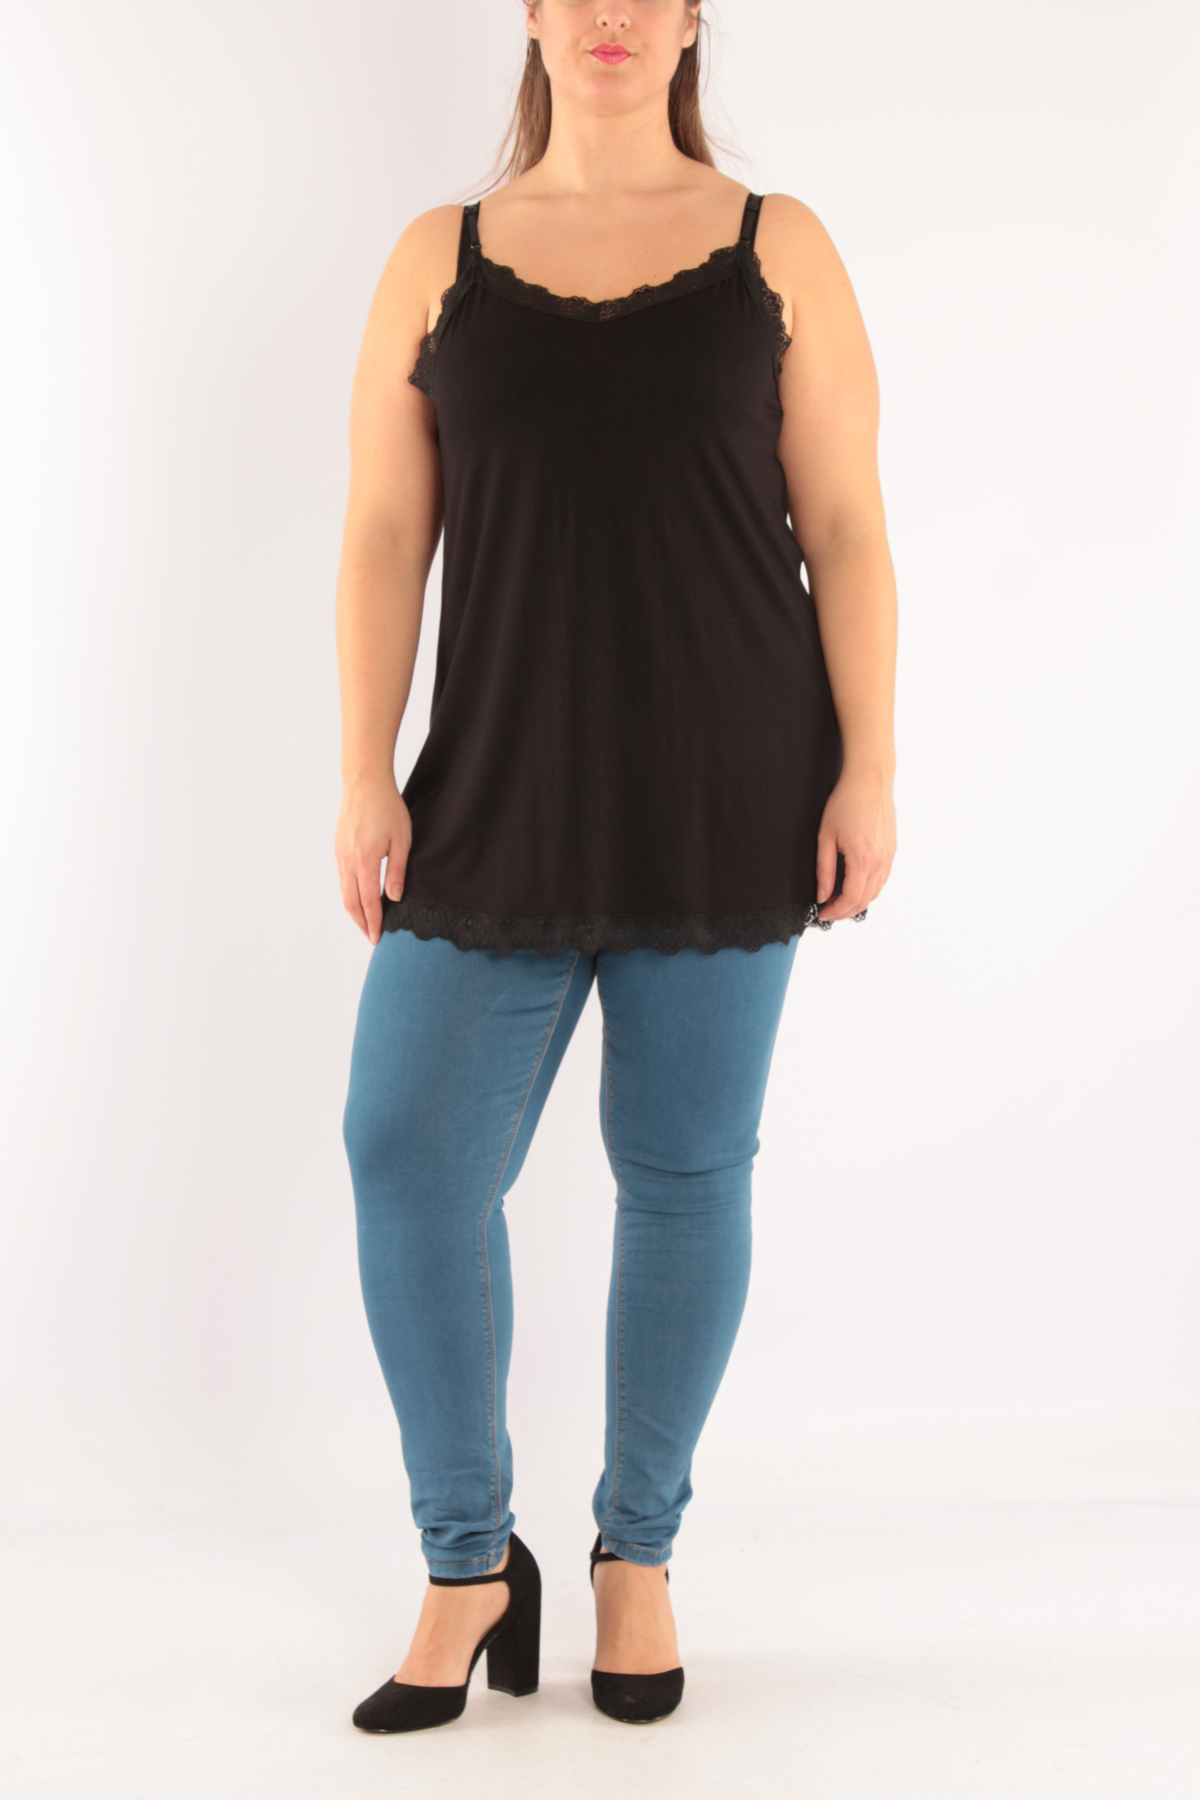 Tops Femme Noir 2W Paris D3290 #c eFashion Paris